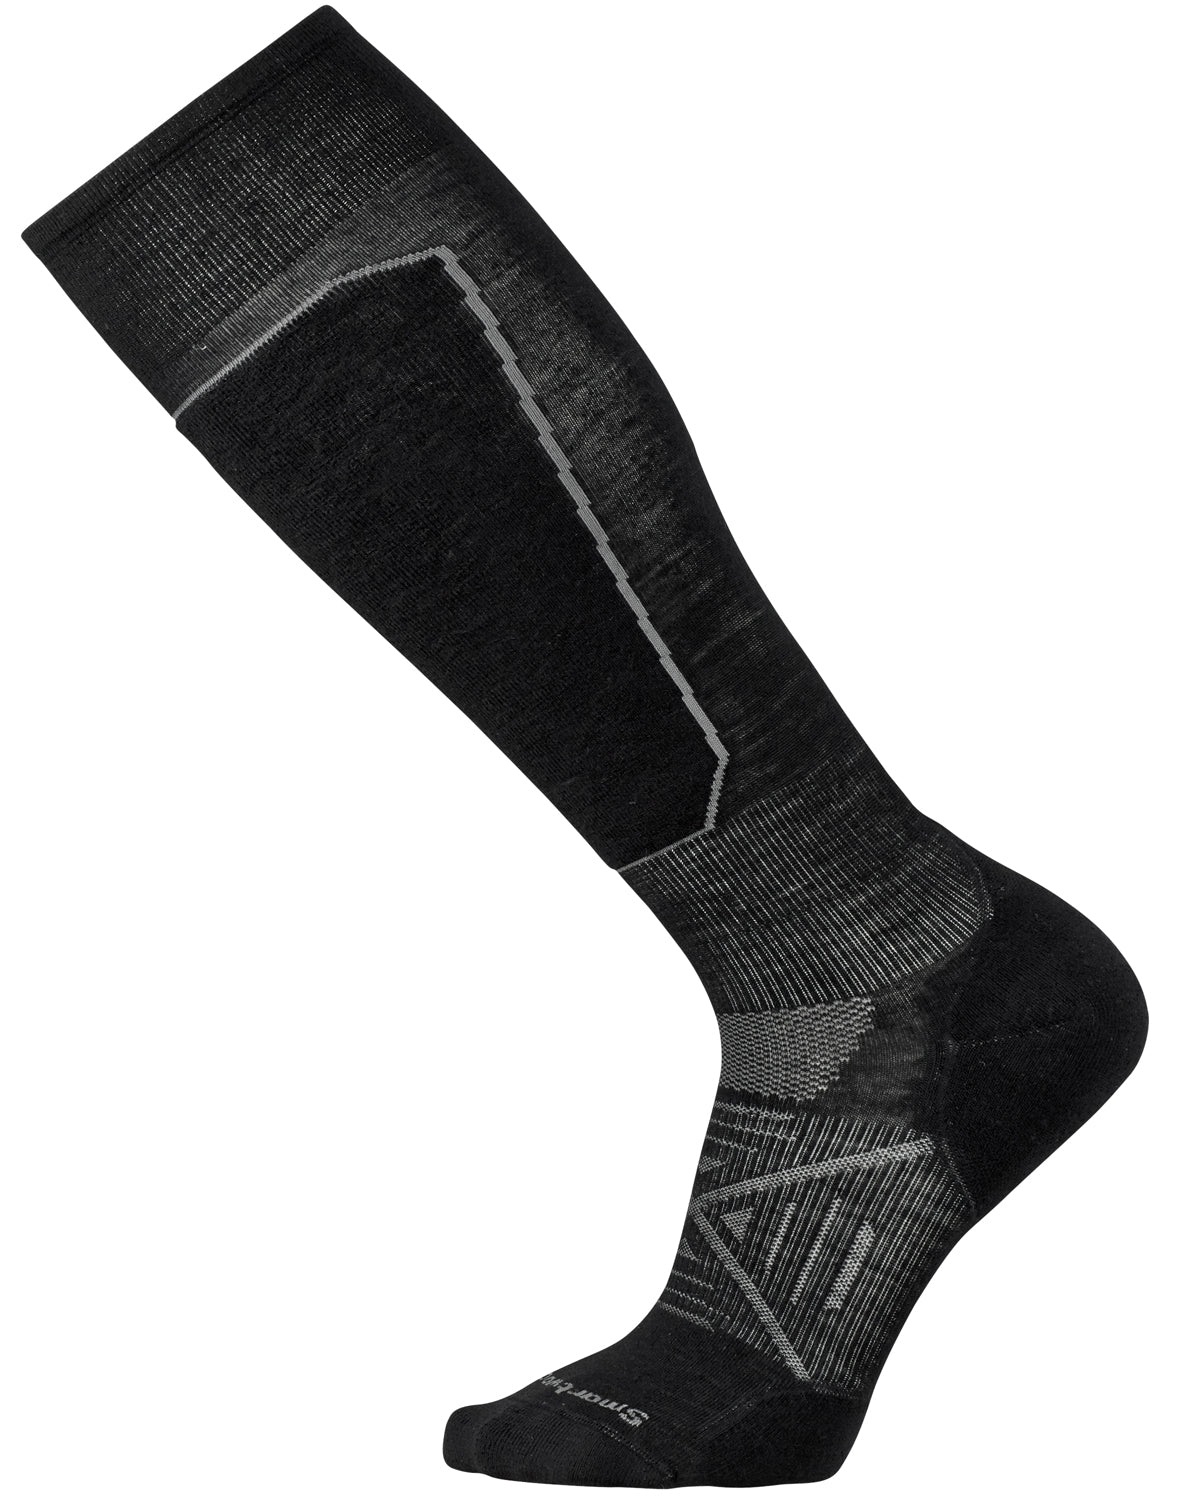 Smartwool Indestructawool™ PHD Ski Light Elite - Black